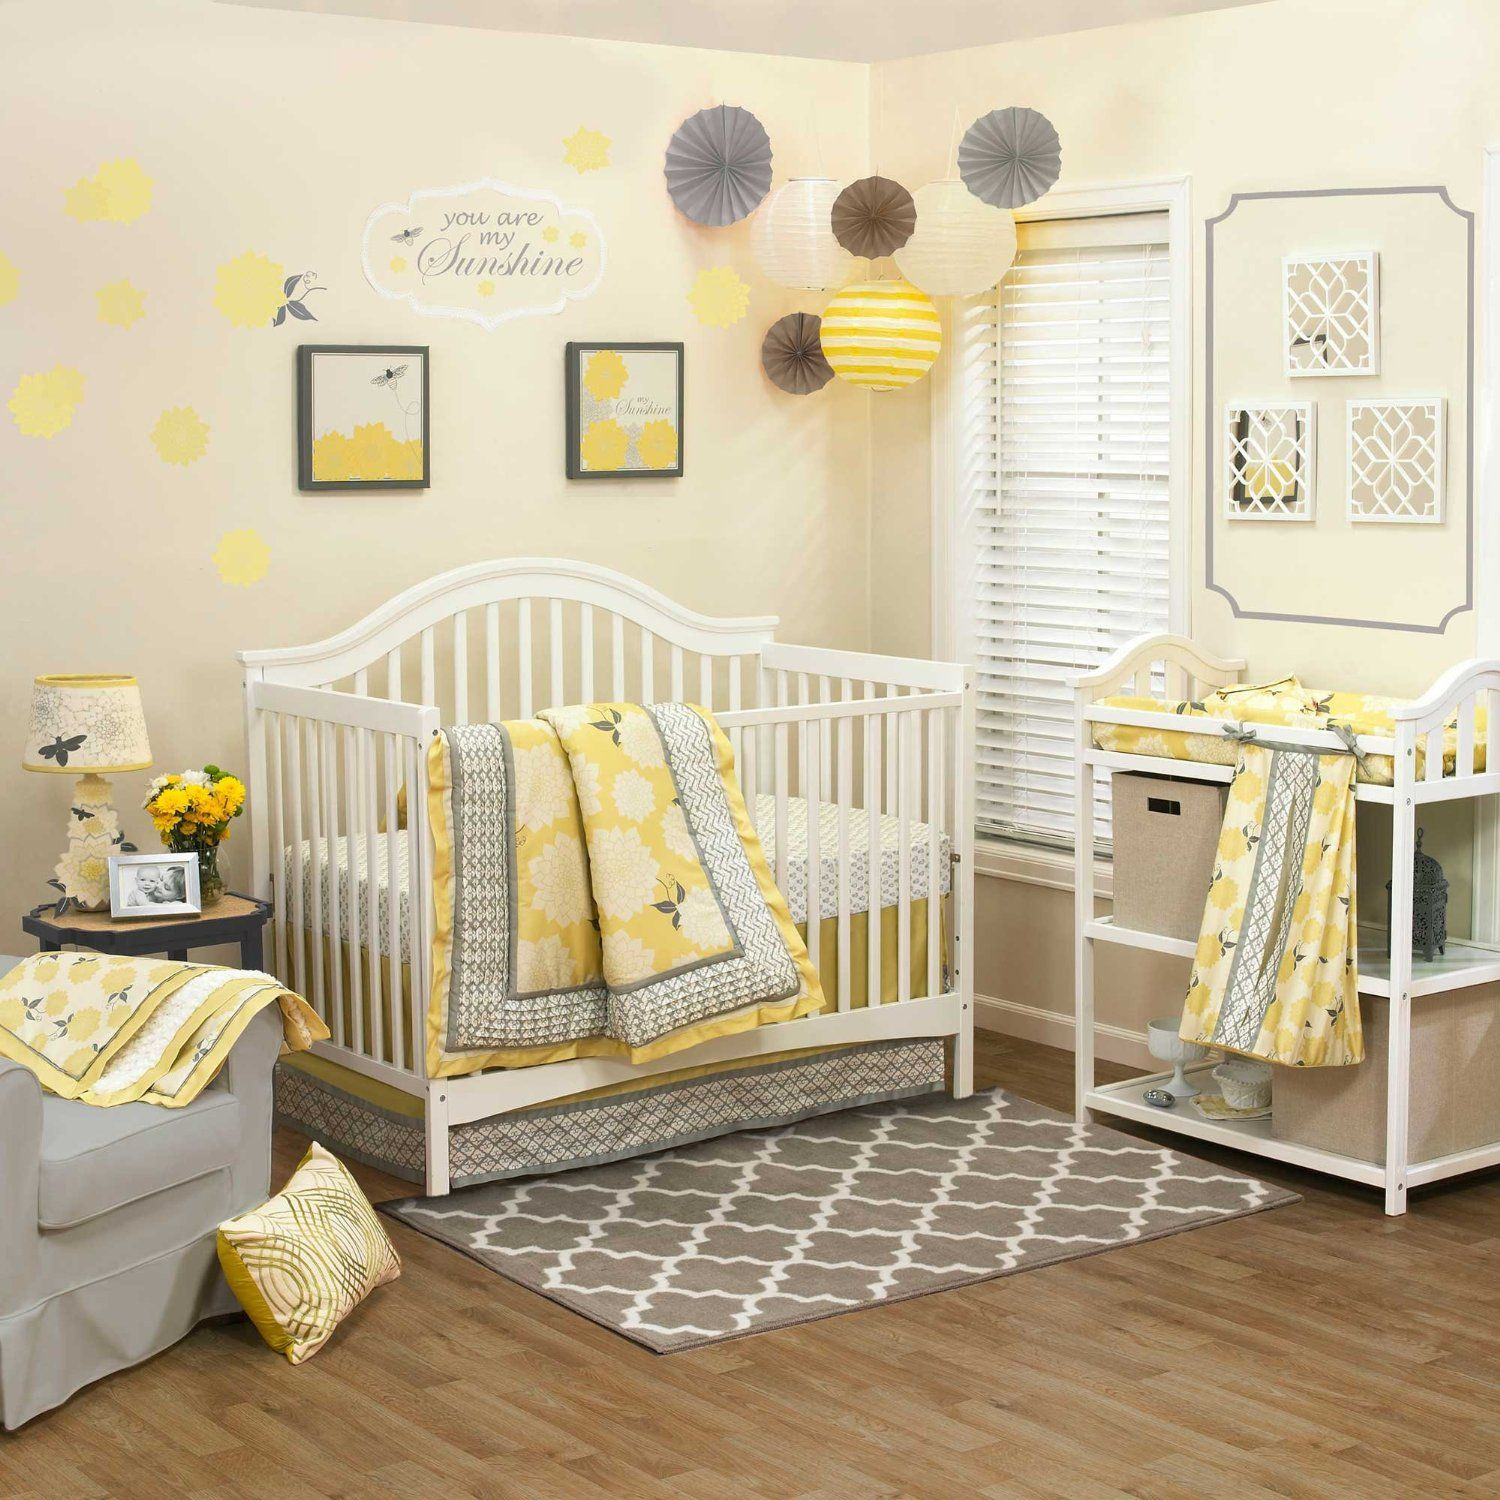 Farallon The Peanut Shell Stella Baby Bedding And Accessories Yellow Crib Gray Nursery